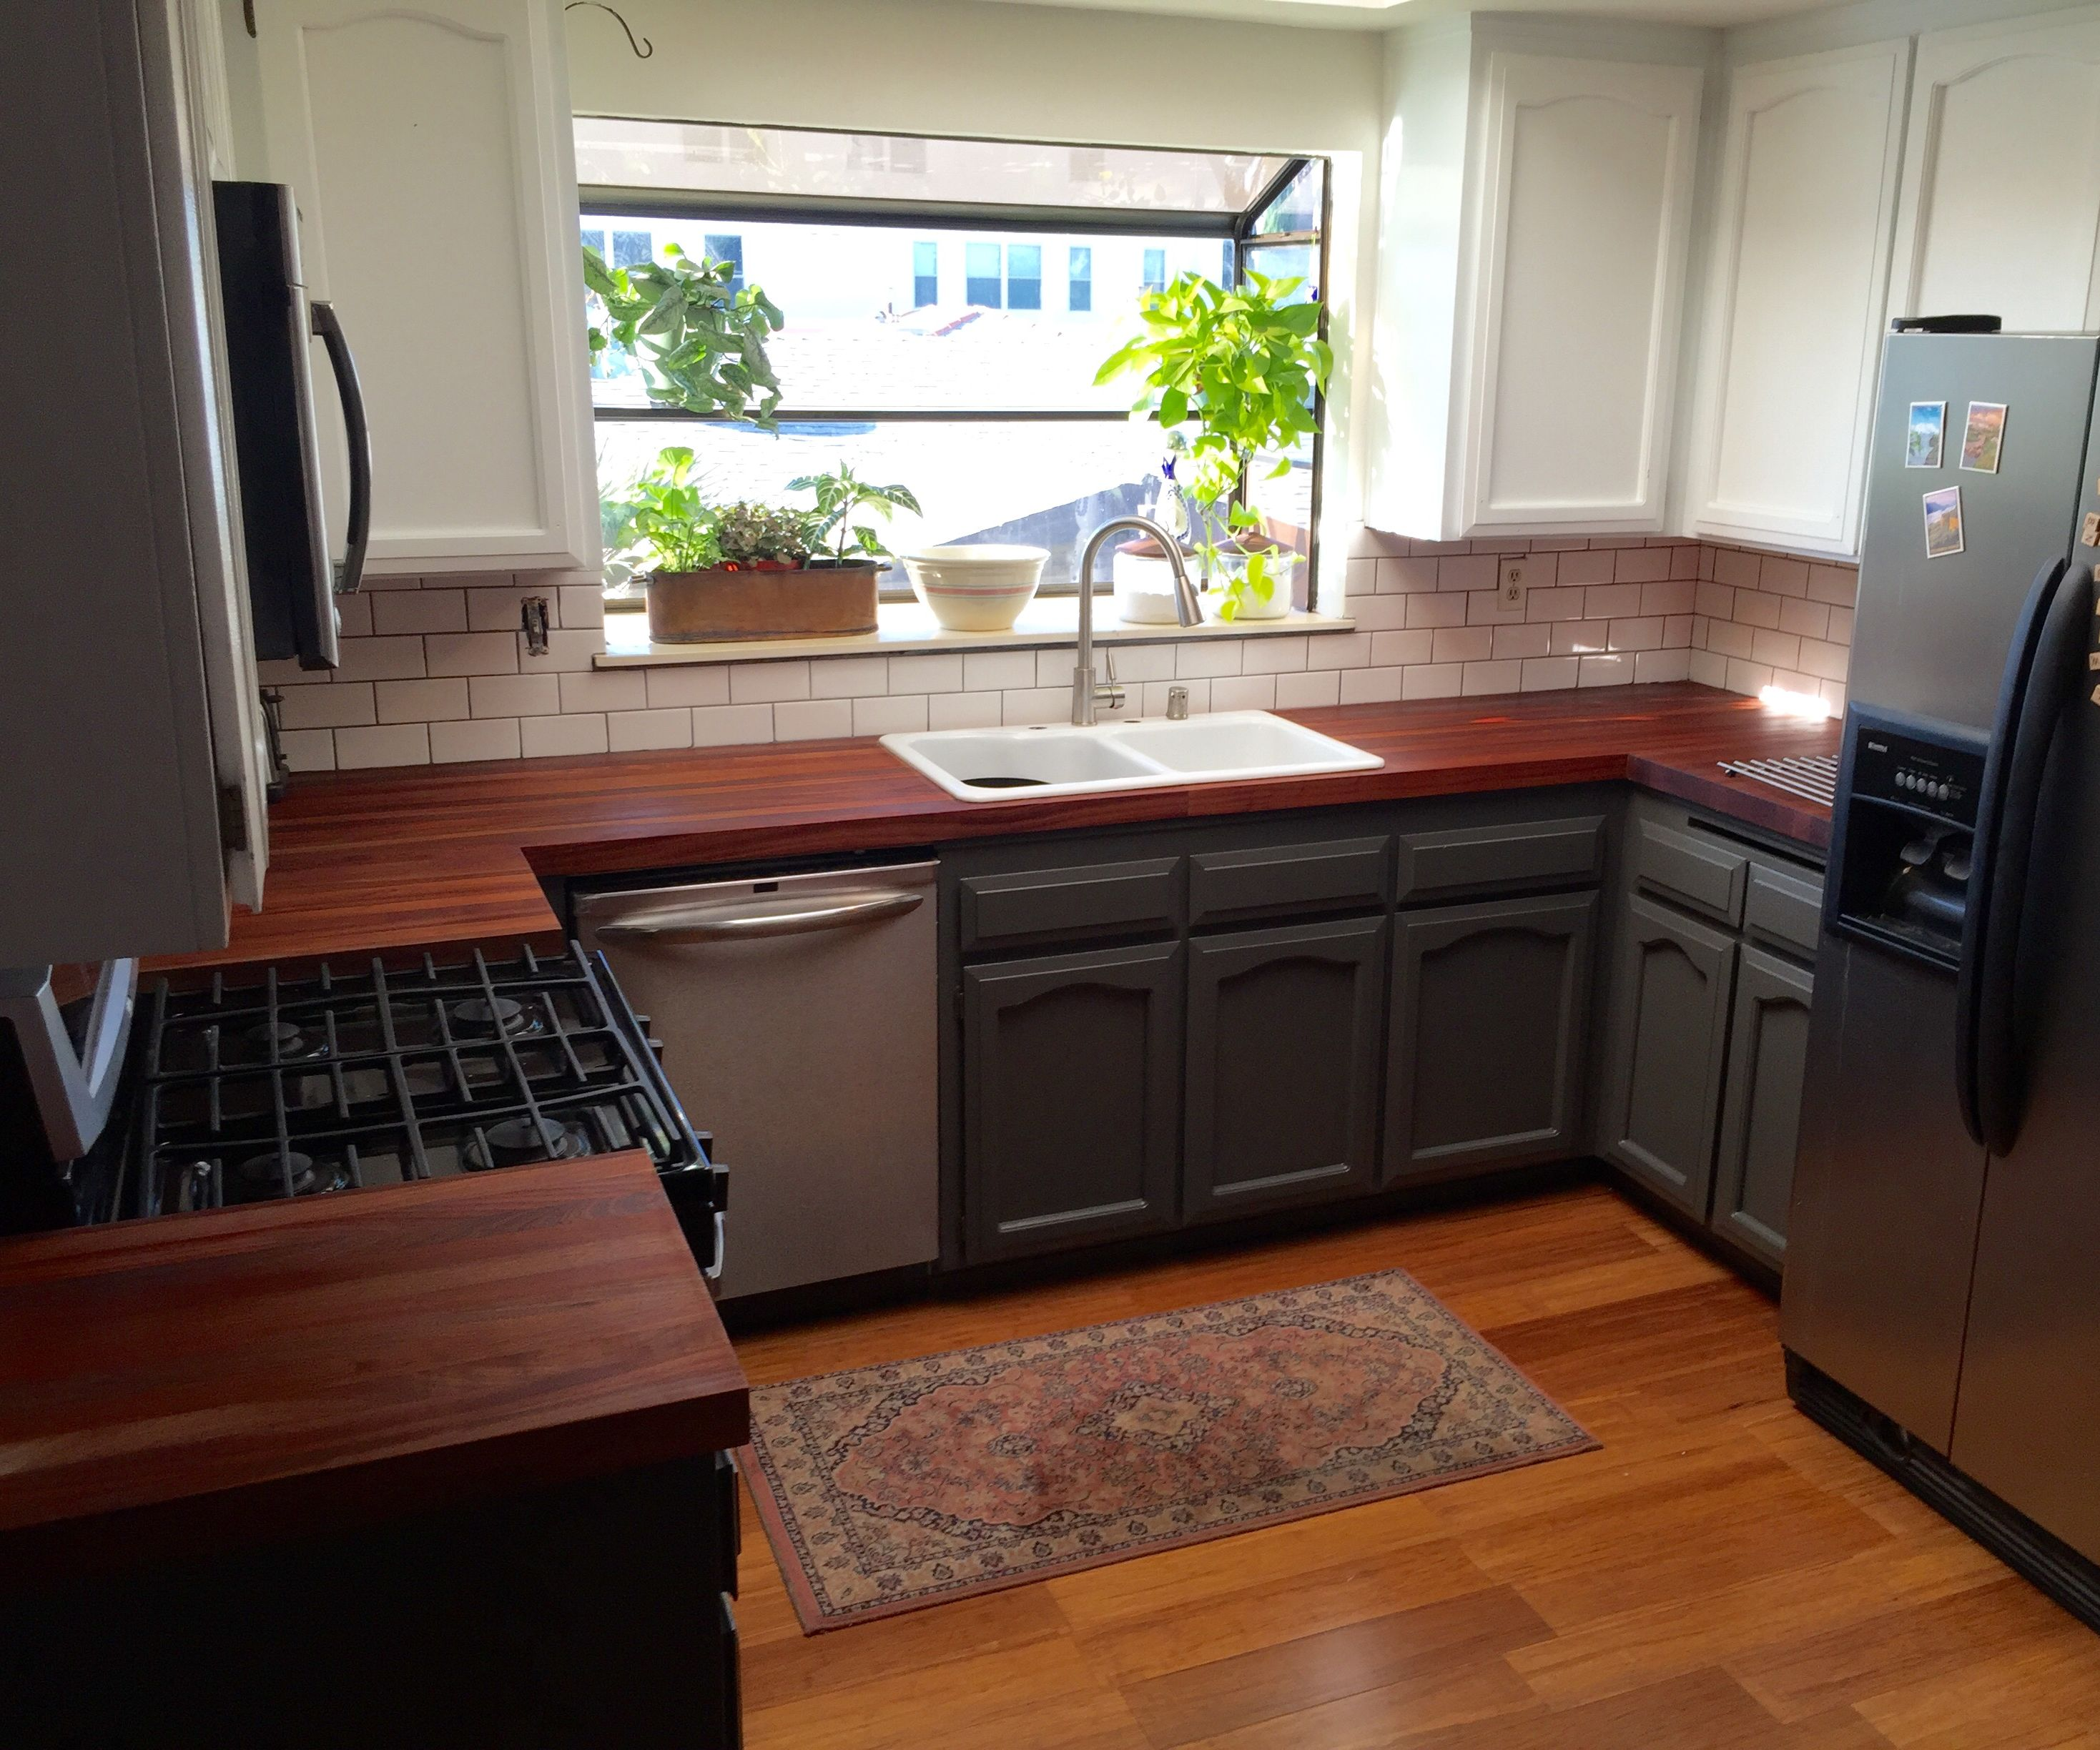 Remodel Your Kitchen For Under $4500.